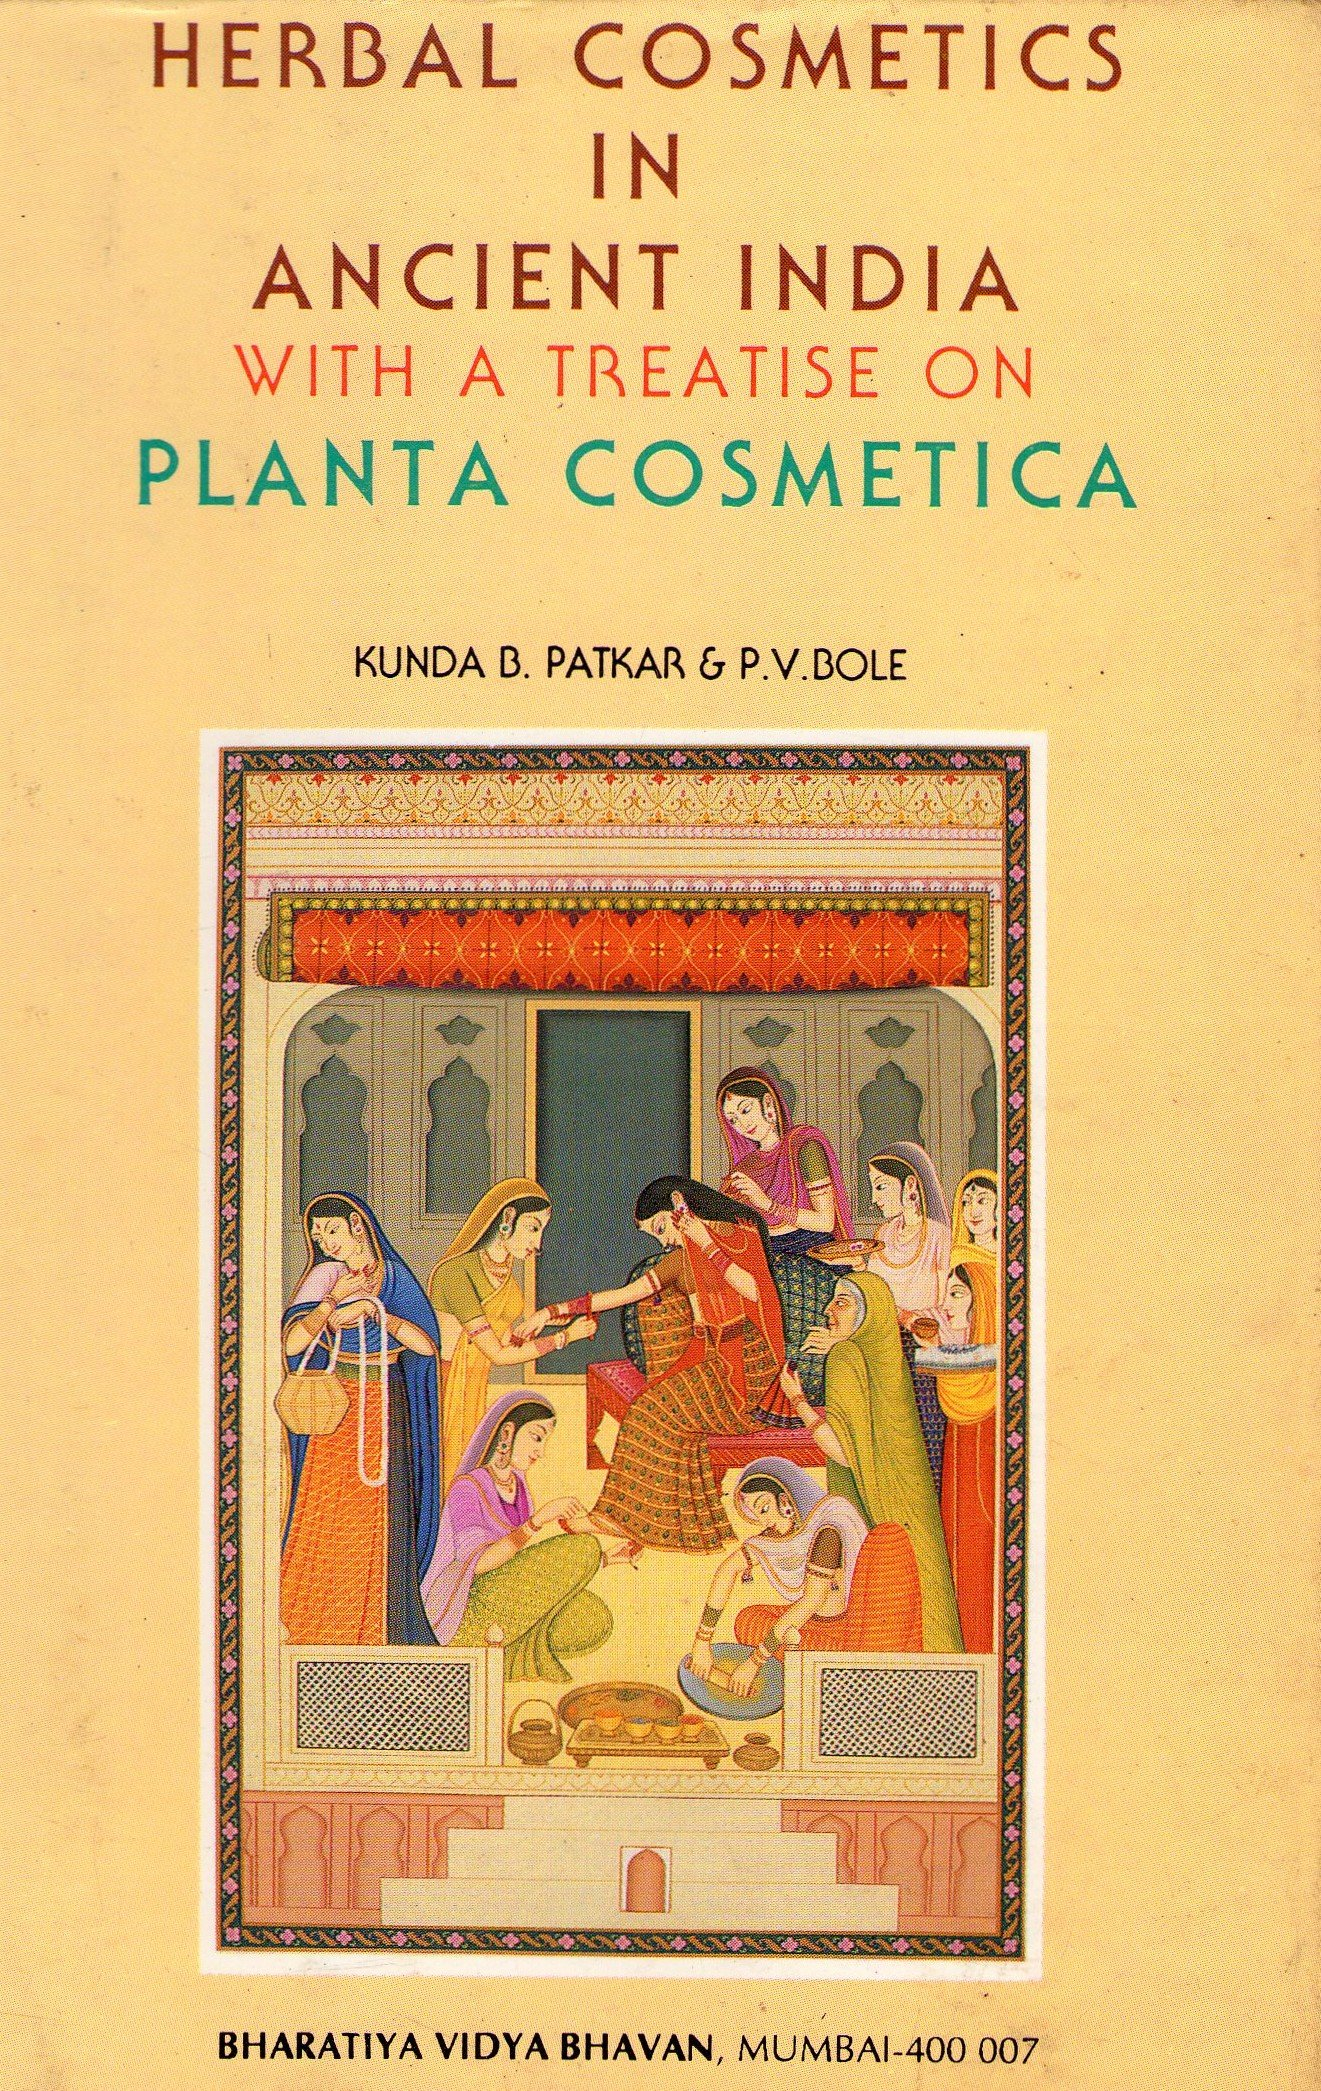 Cosmetology Ancient India.Book.Image.jpg